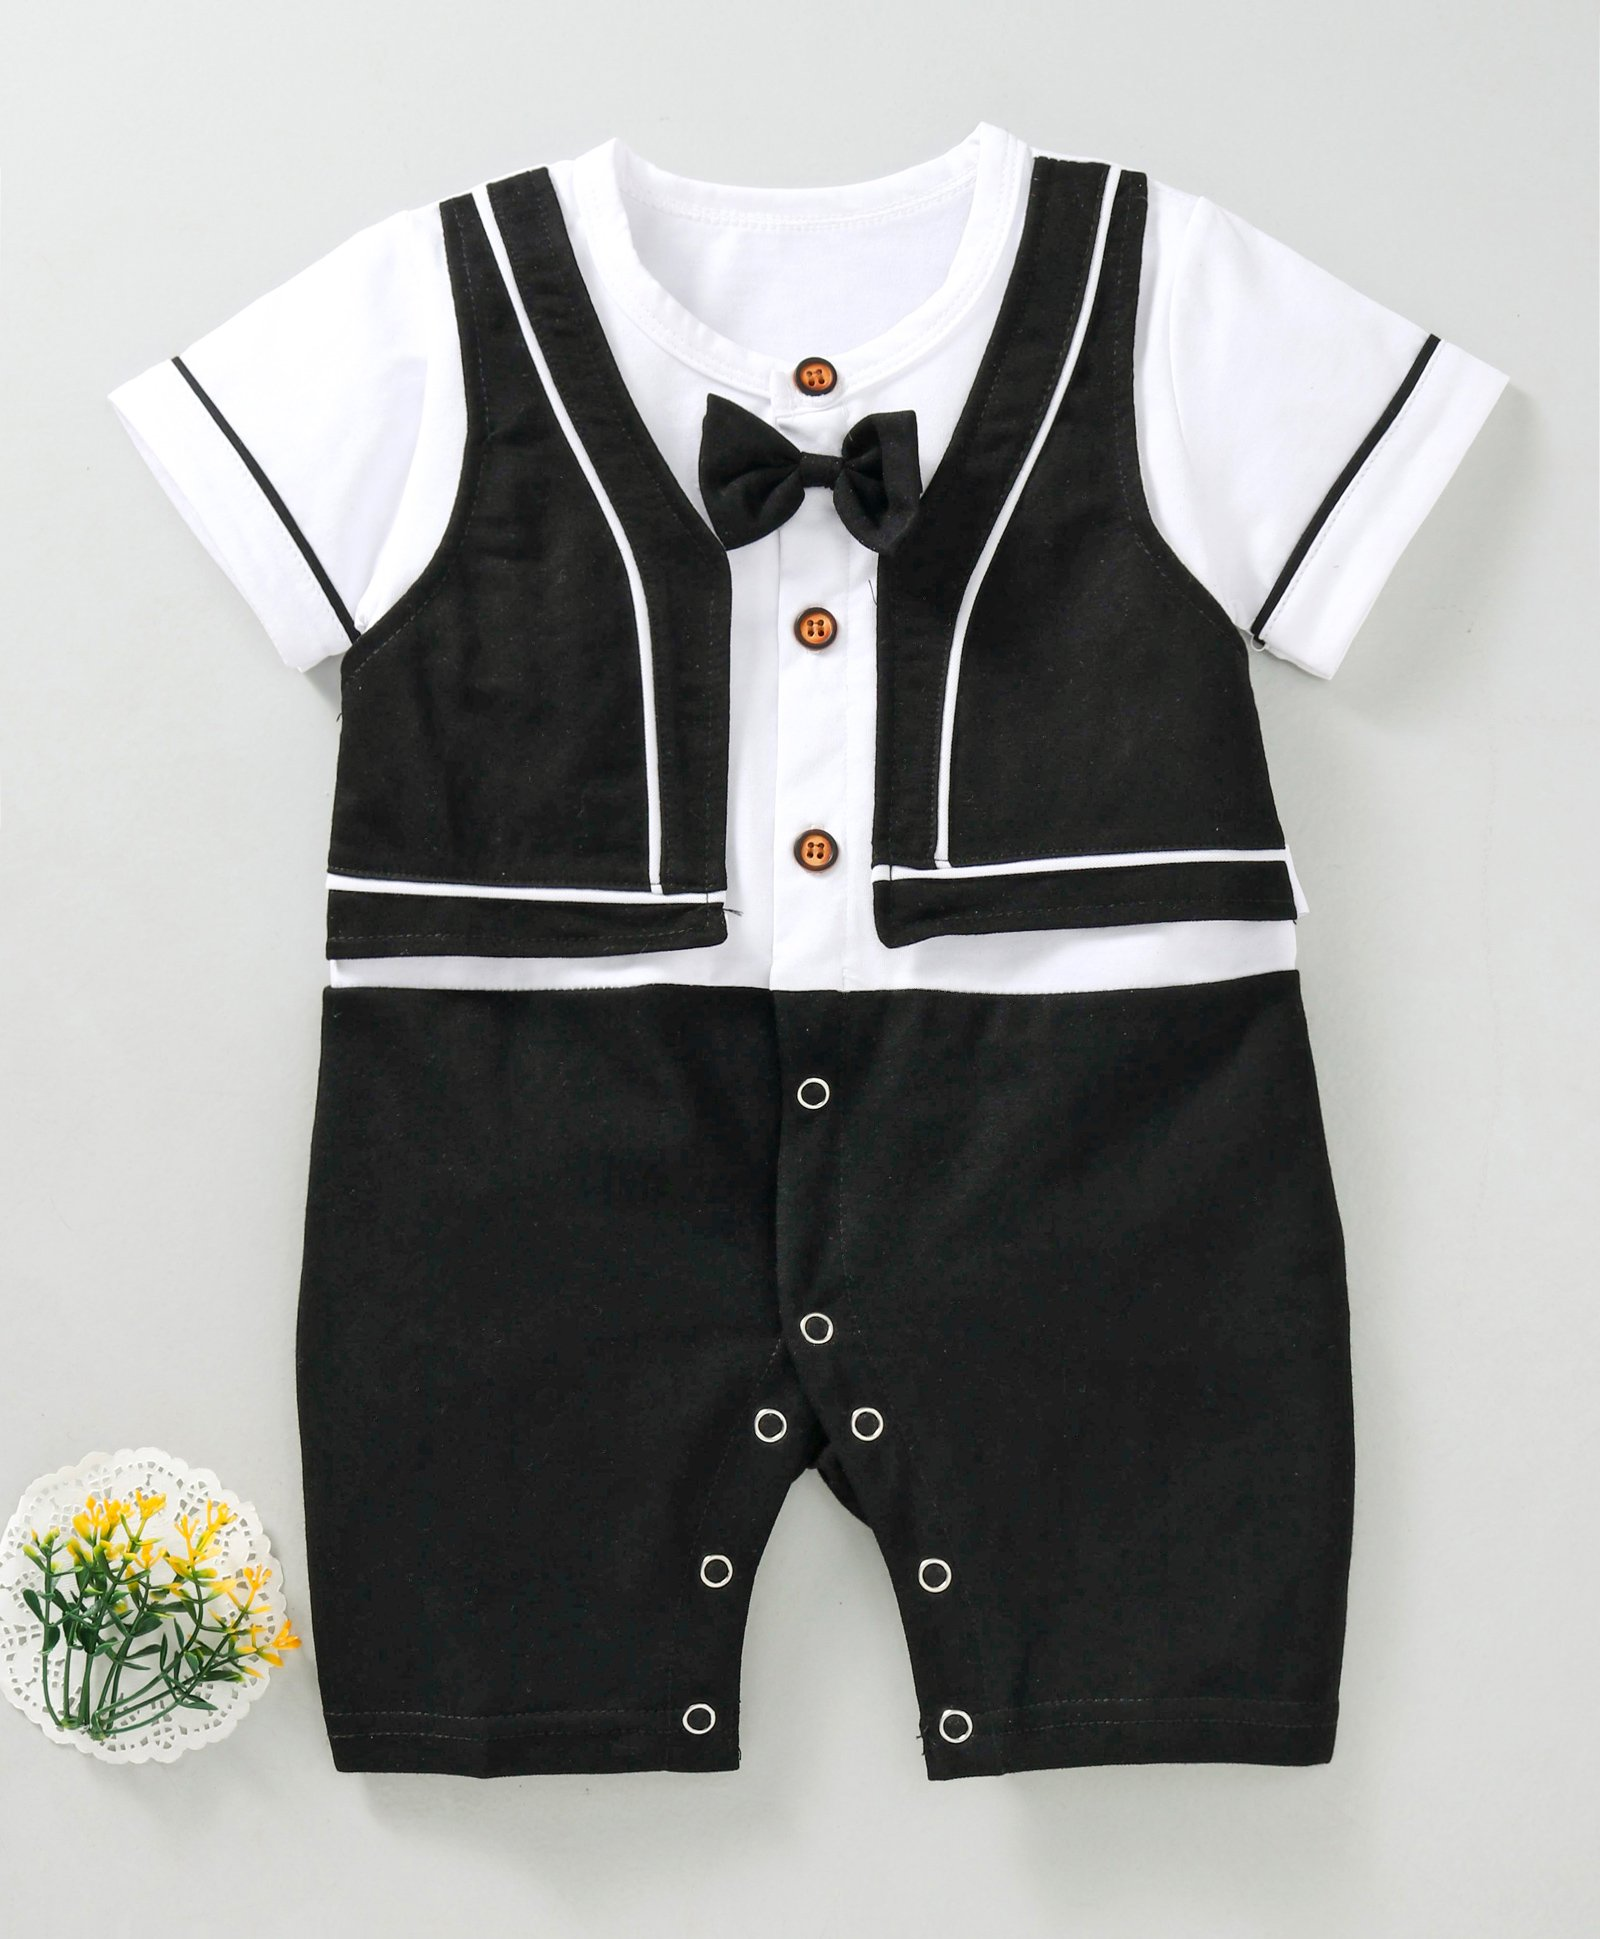 e686f843ac67 Buy Meng Wa(66) Black White Baby Rompers for Boys (9-12 Months ...